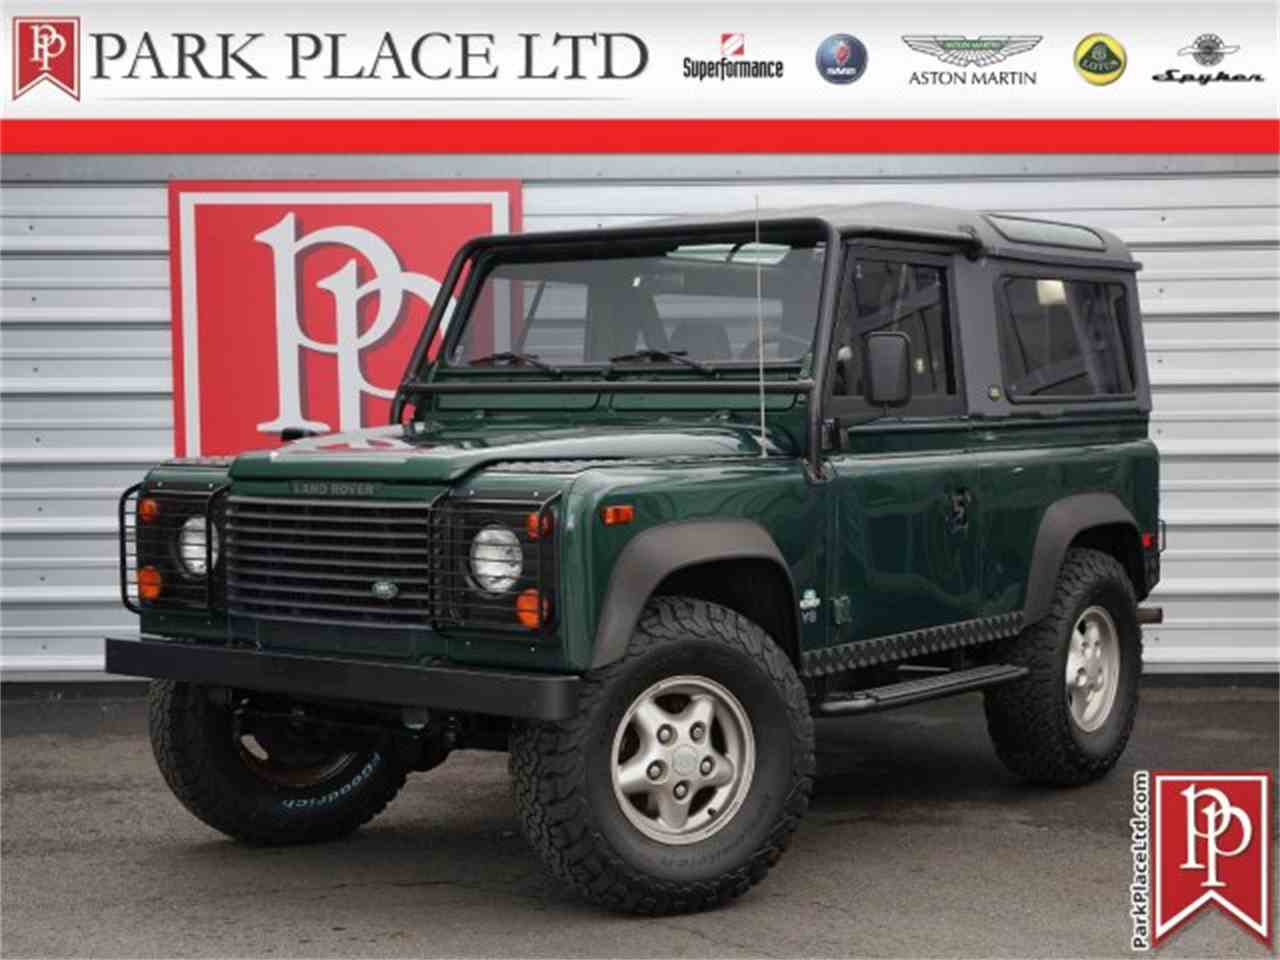 msrp news landrover reviews rover ratings discovery with sale land for